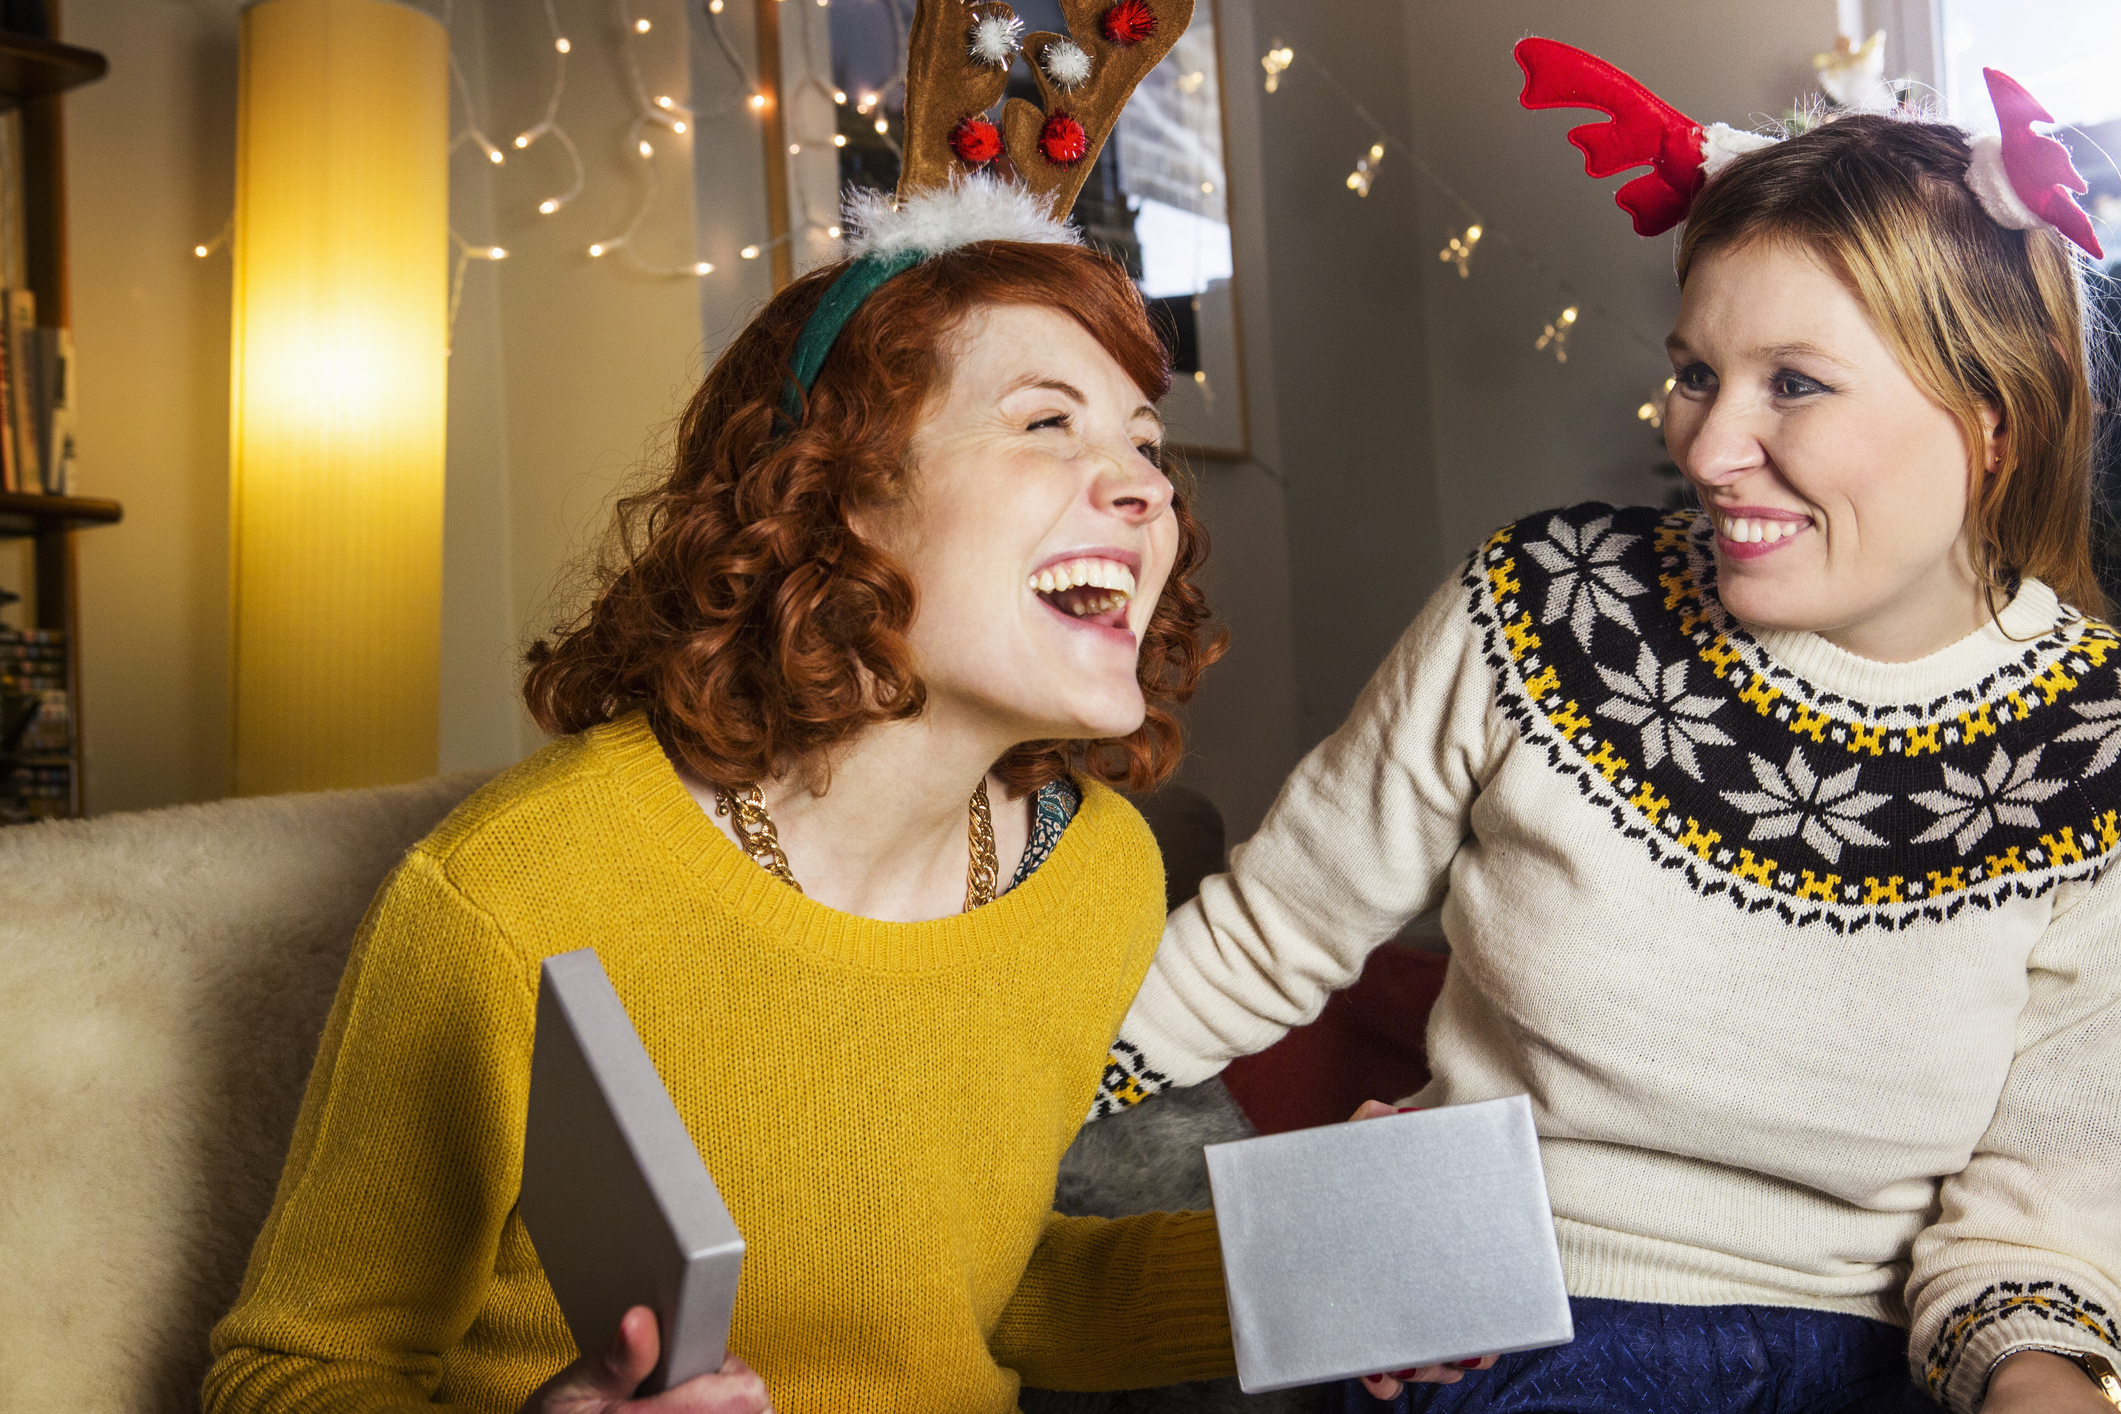 16 reasons why it's better to be single at Christmas